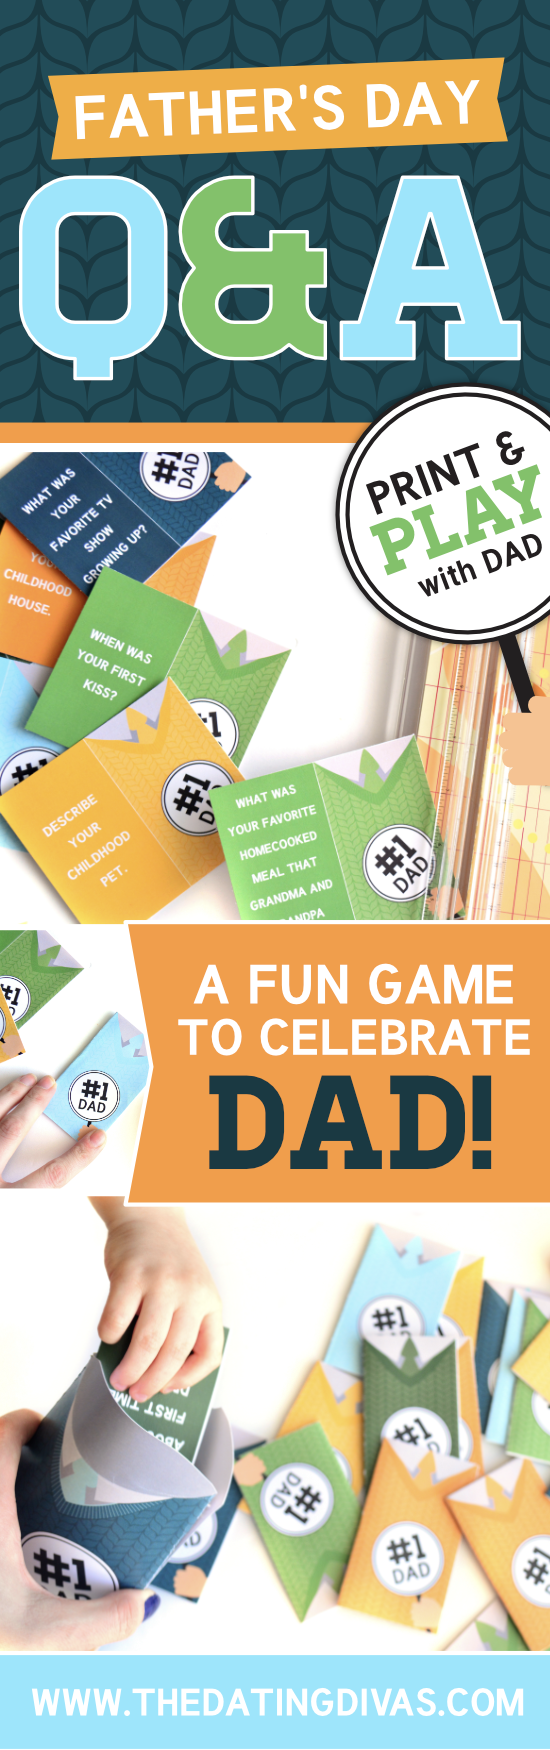 These are things I've always wanted to know about my dad! I can't wait to use this Father's Day Activity from thedatingdivas.com It's super quick and easy to put together - WIN! #Father'sDayActivity #Father'sDay #Father'sDayQuestions #TheDatingDivas